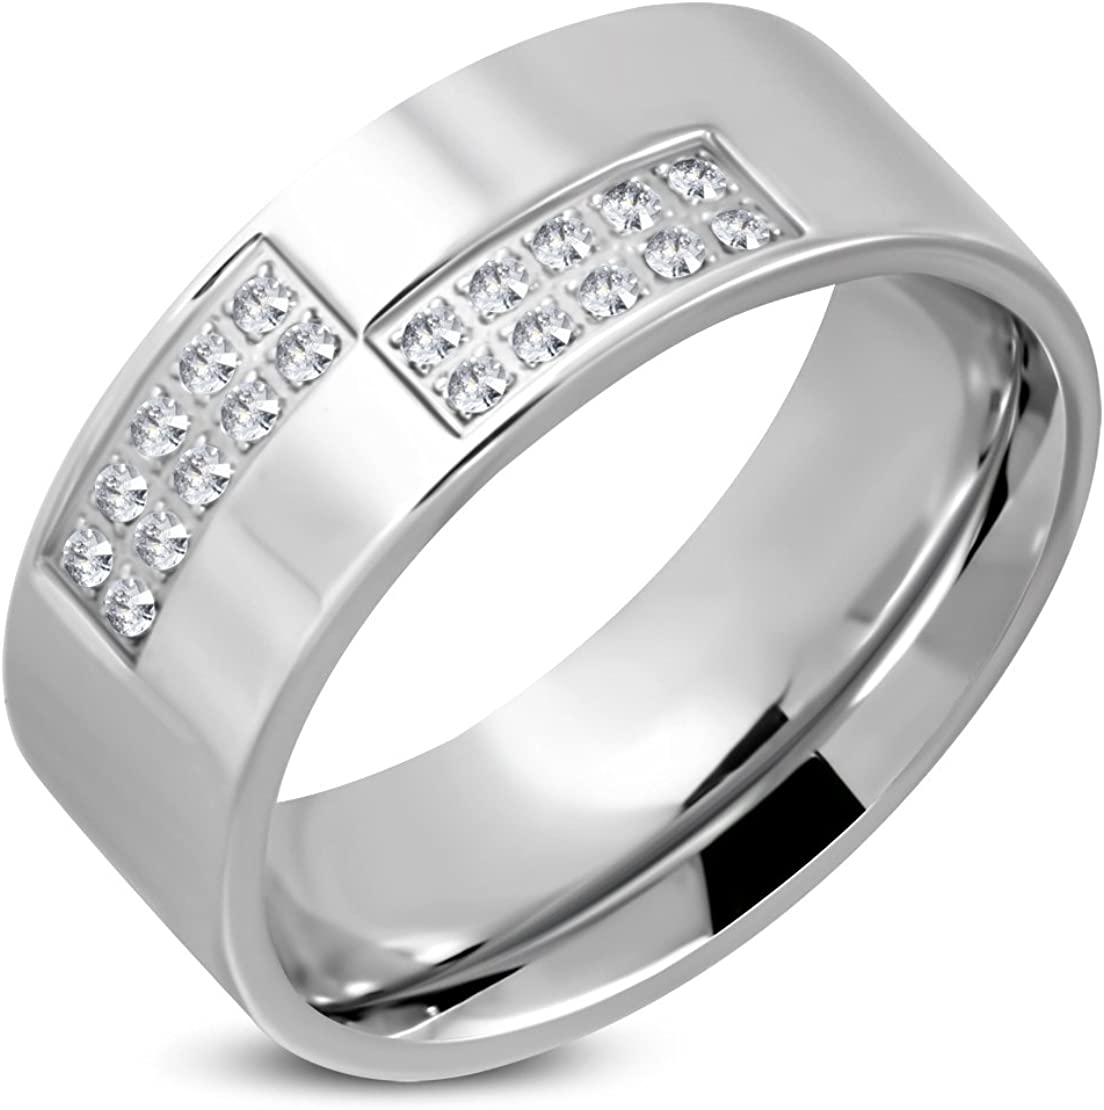 Stainless Steel Semi Pave-Set Comfort Fit Wedding Flat Band Ring with Clear CZ